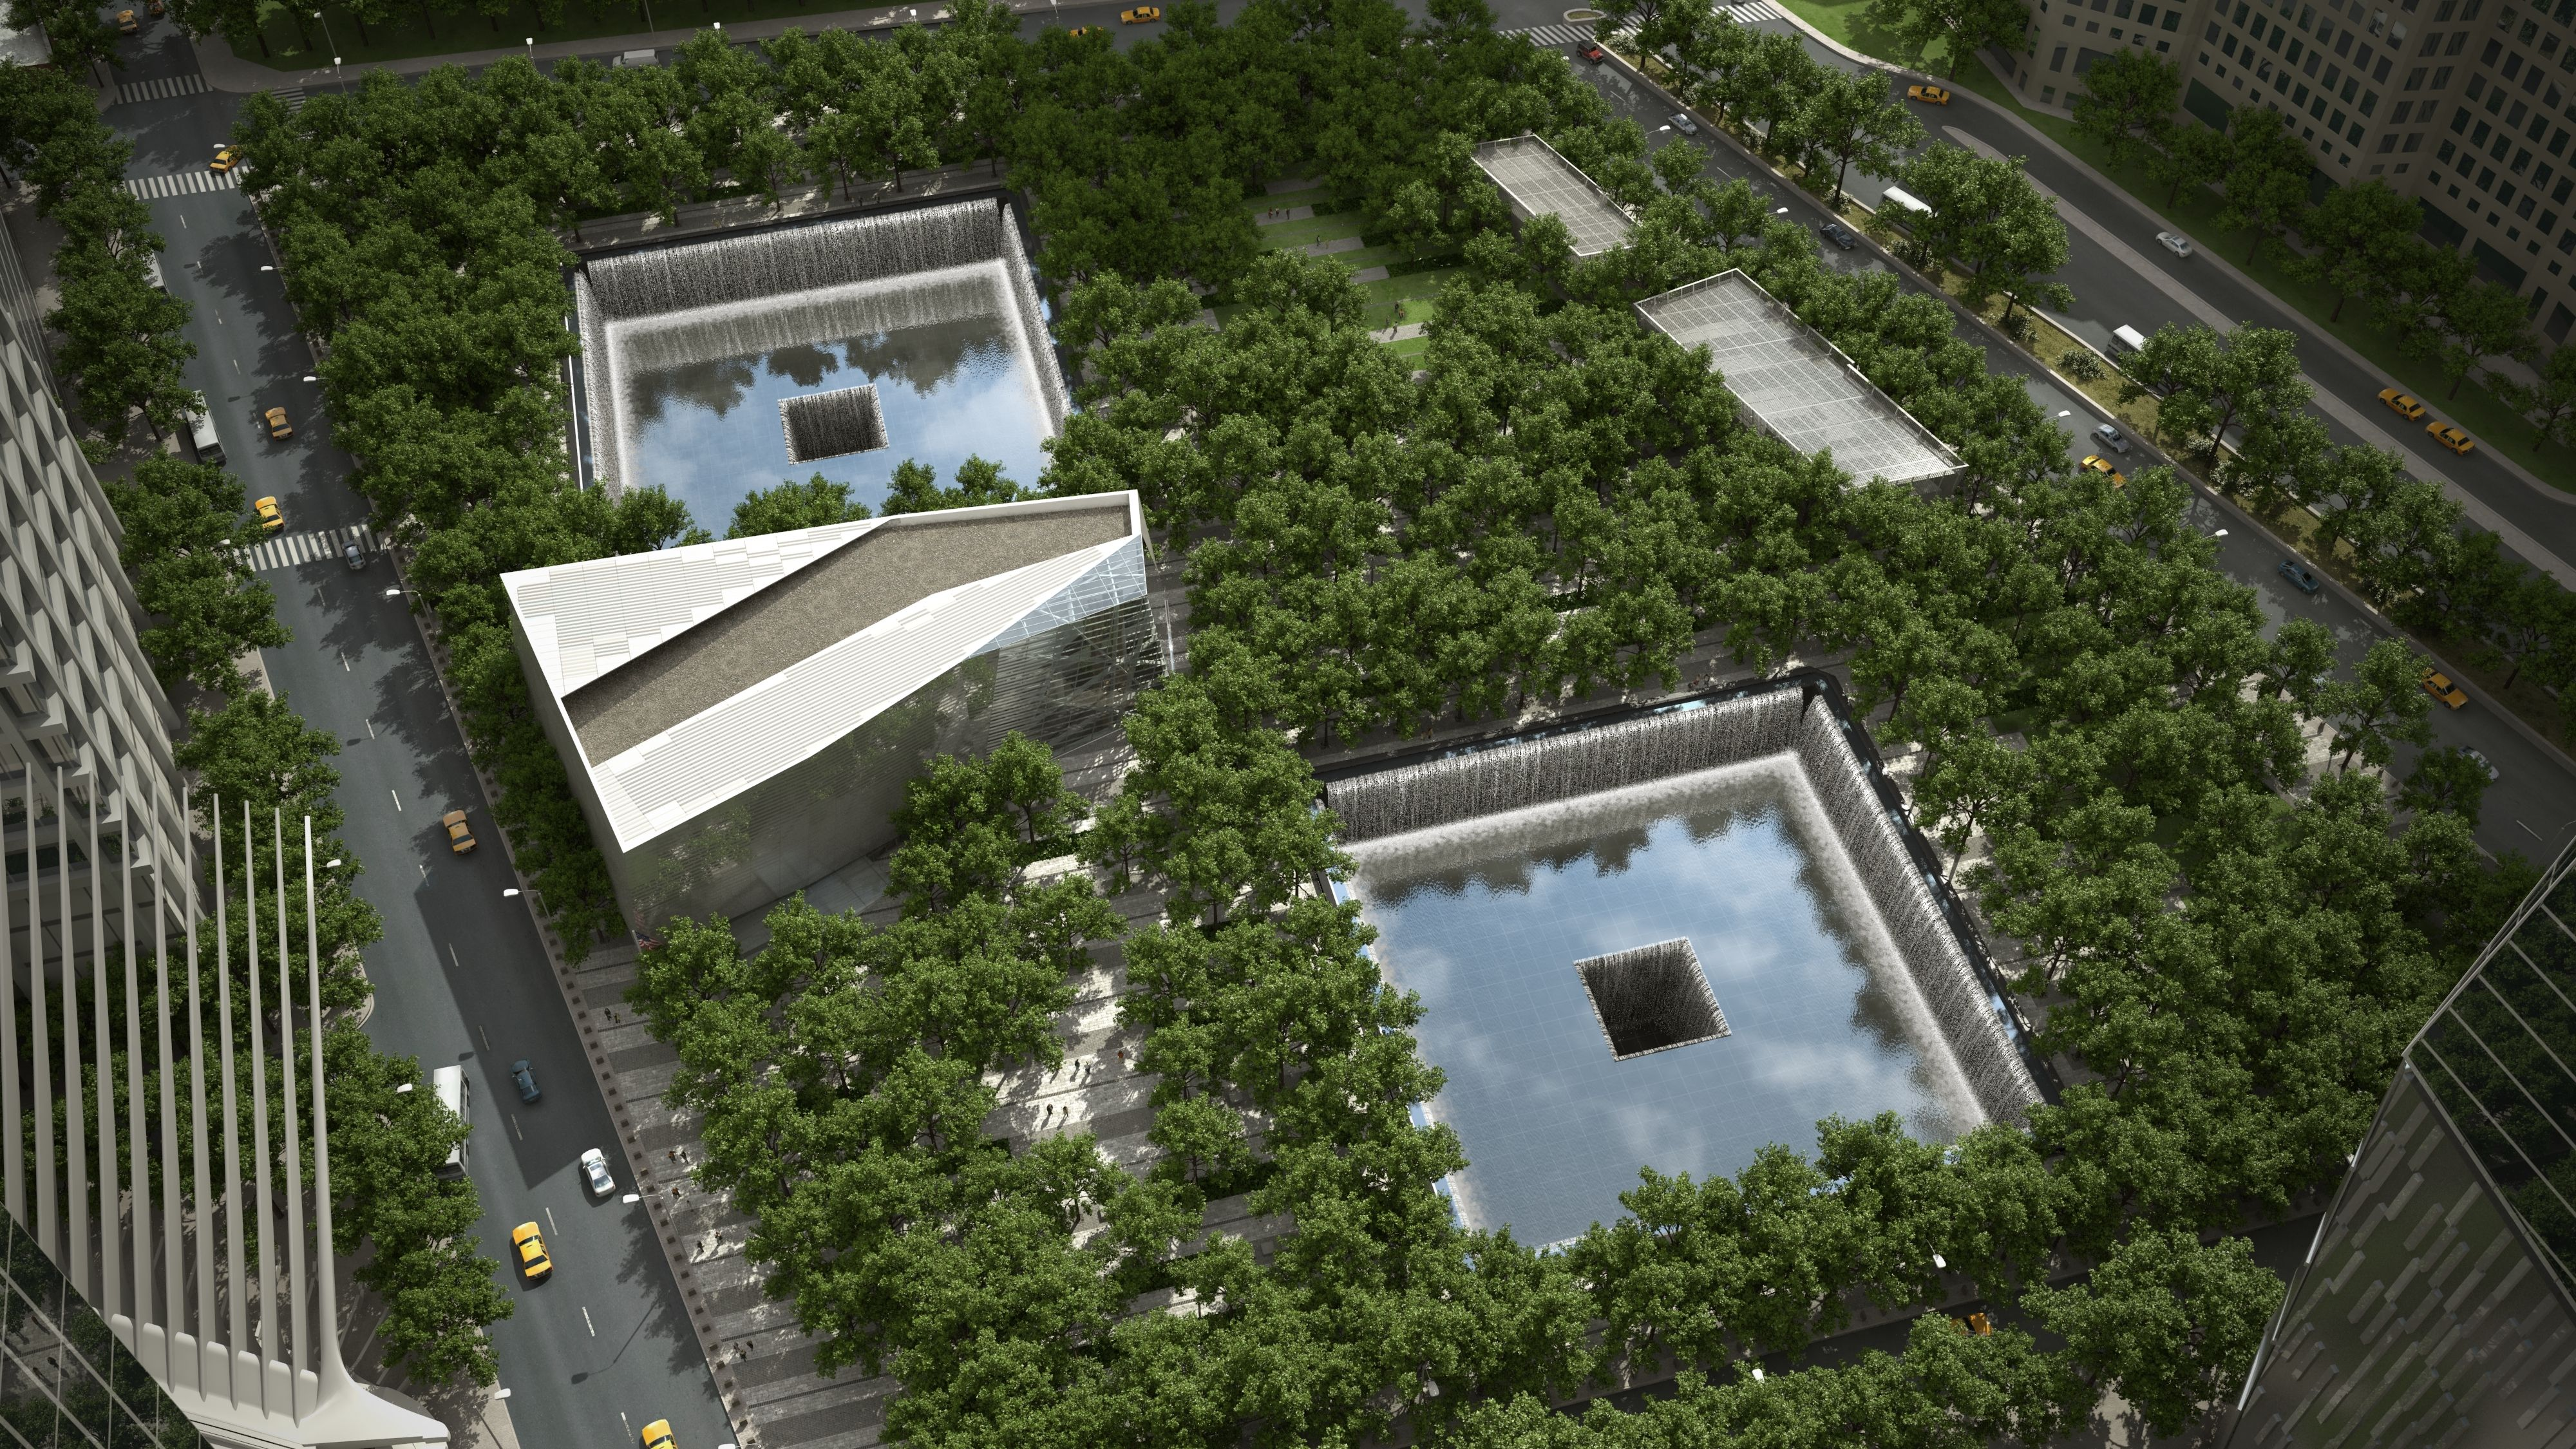 9/11 Memorial | Washington DC & New York Trip | Pinterest | Las ...